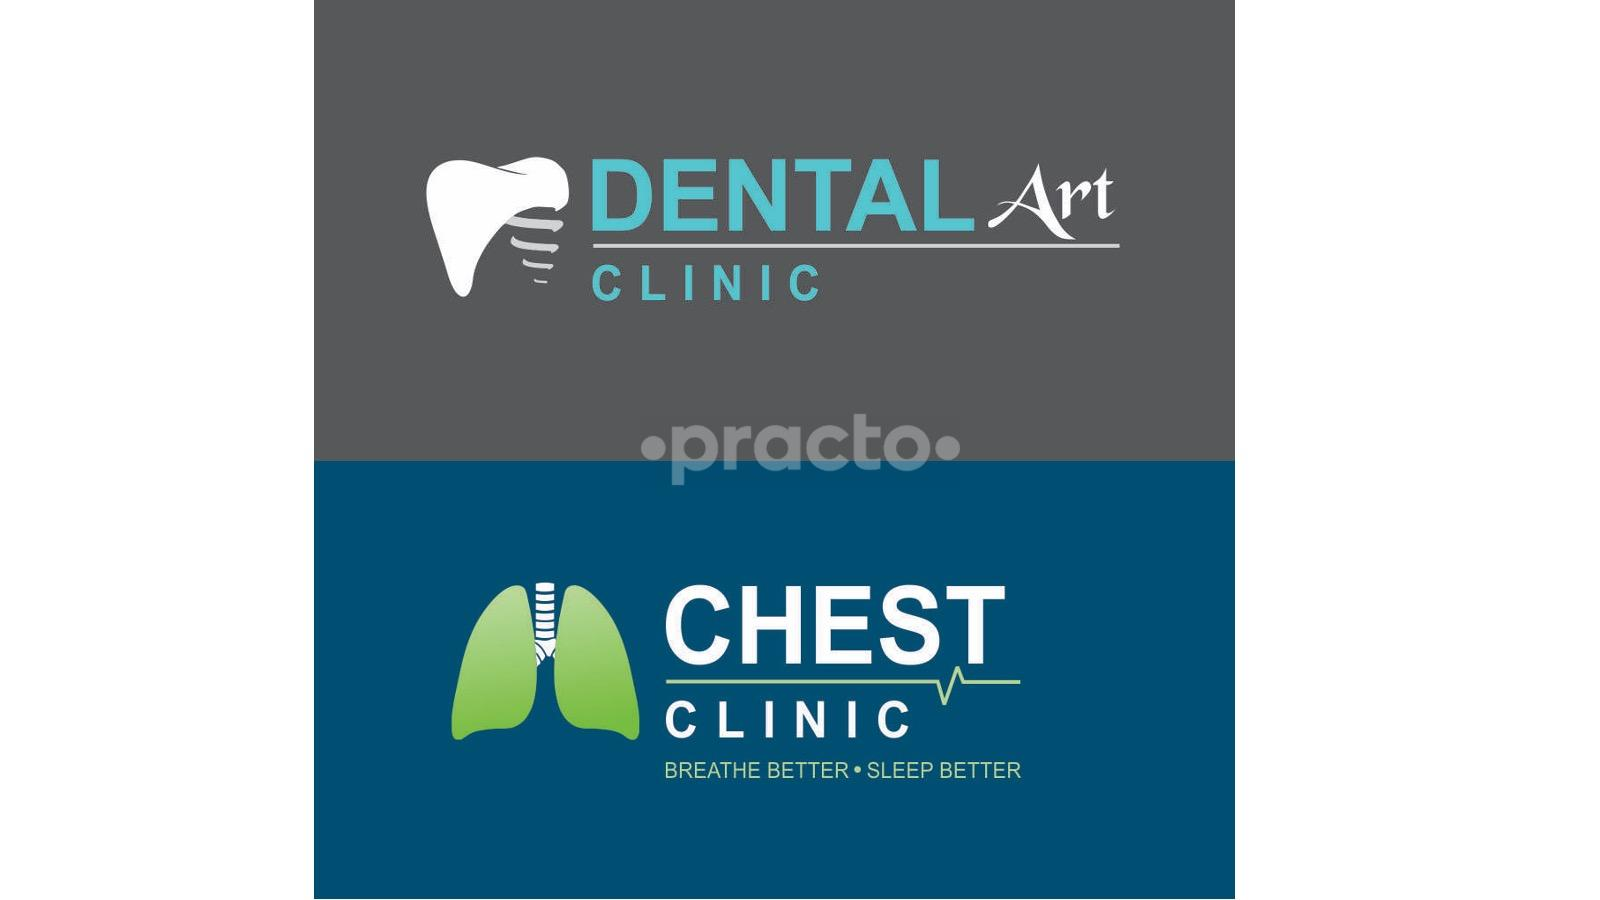 Dental Art and Chest Clinic